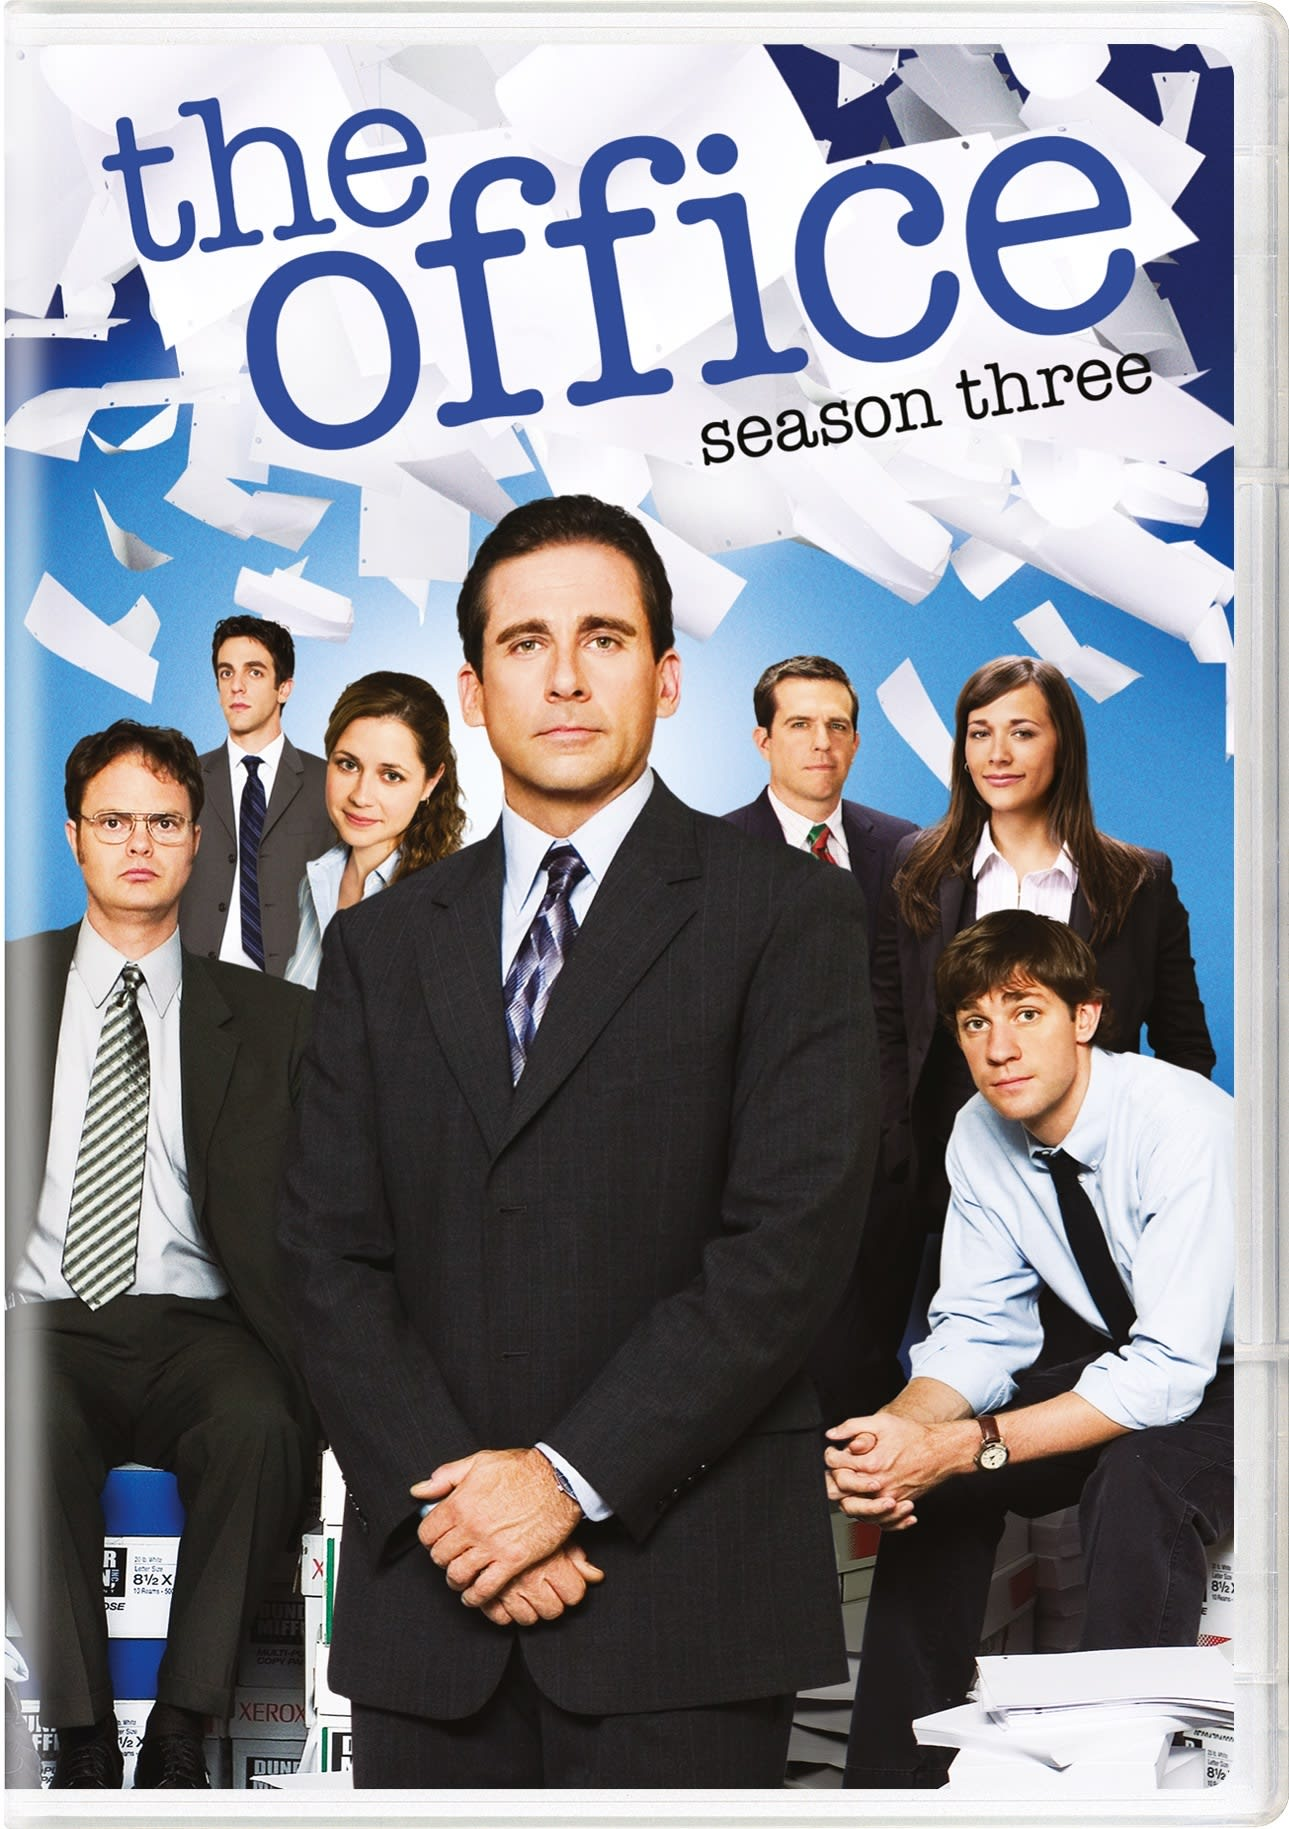 The Office - An American Workplace: Season 3 (2019) [DVD]